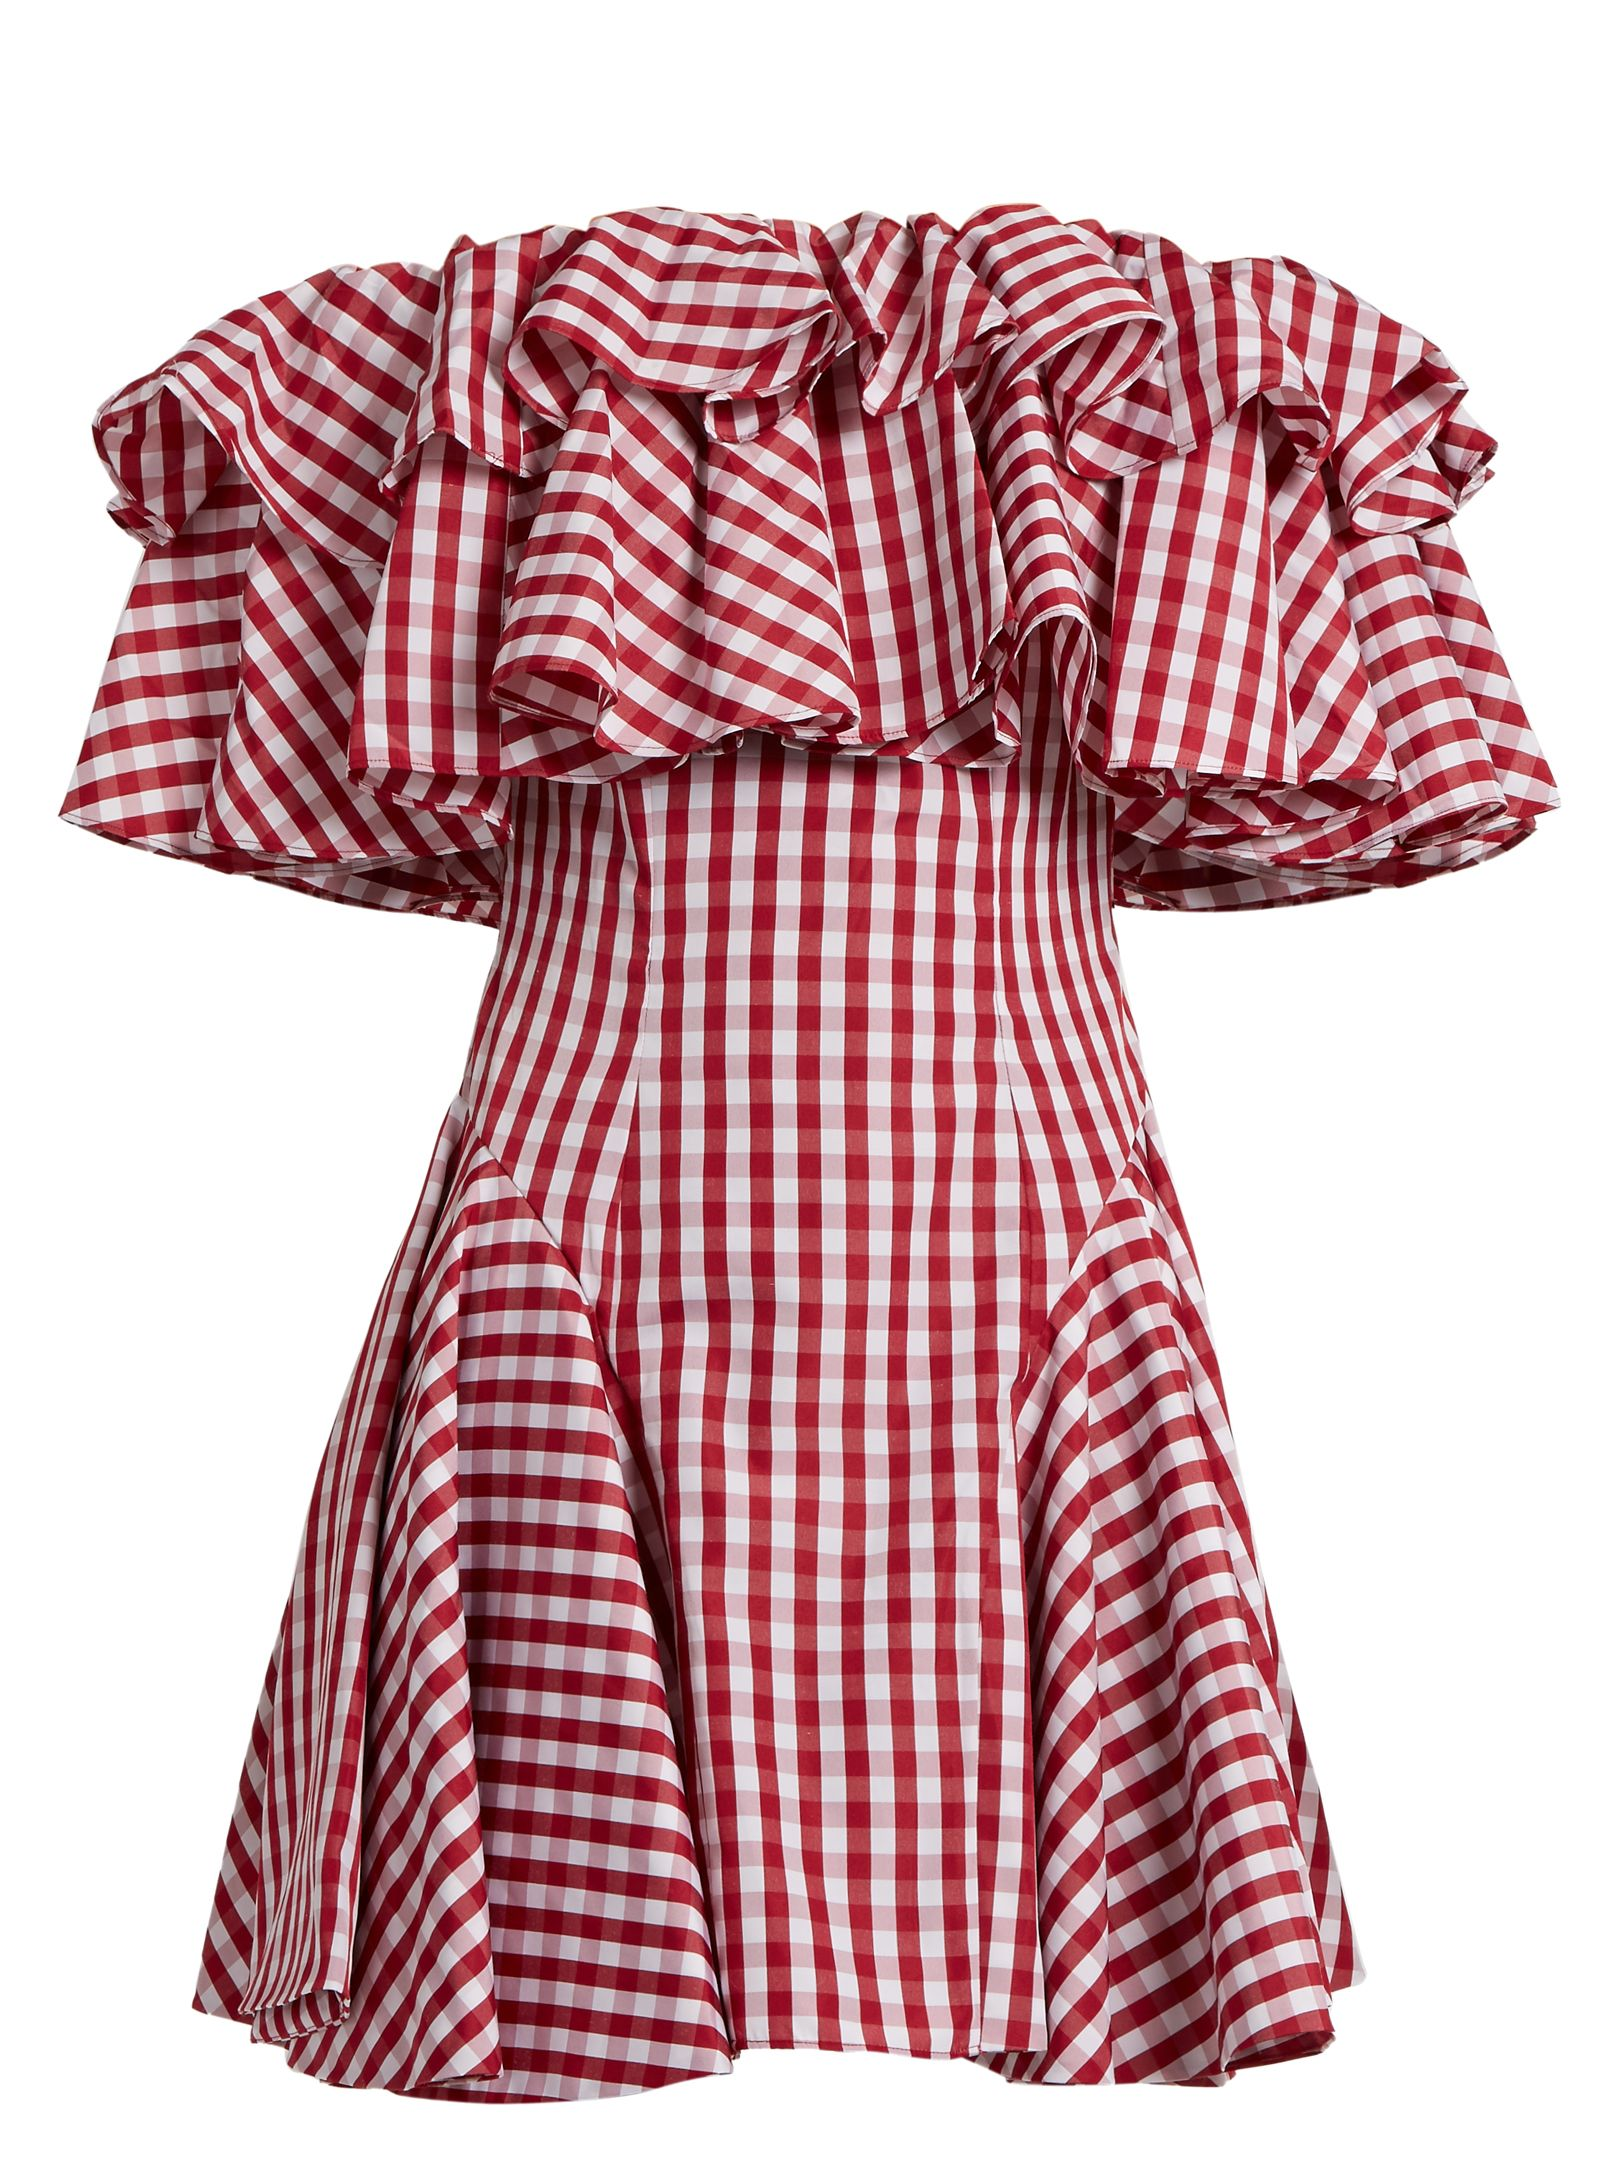 8b30c532c567 House Of Holland Off-the-shoulder gingham dress at